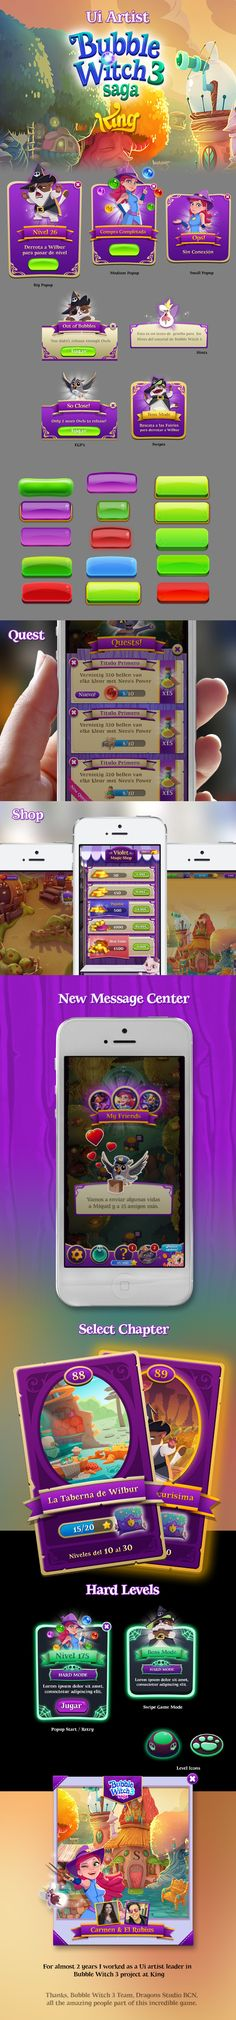 UI Artist Bubble Witch 3 on Behance